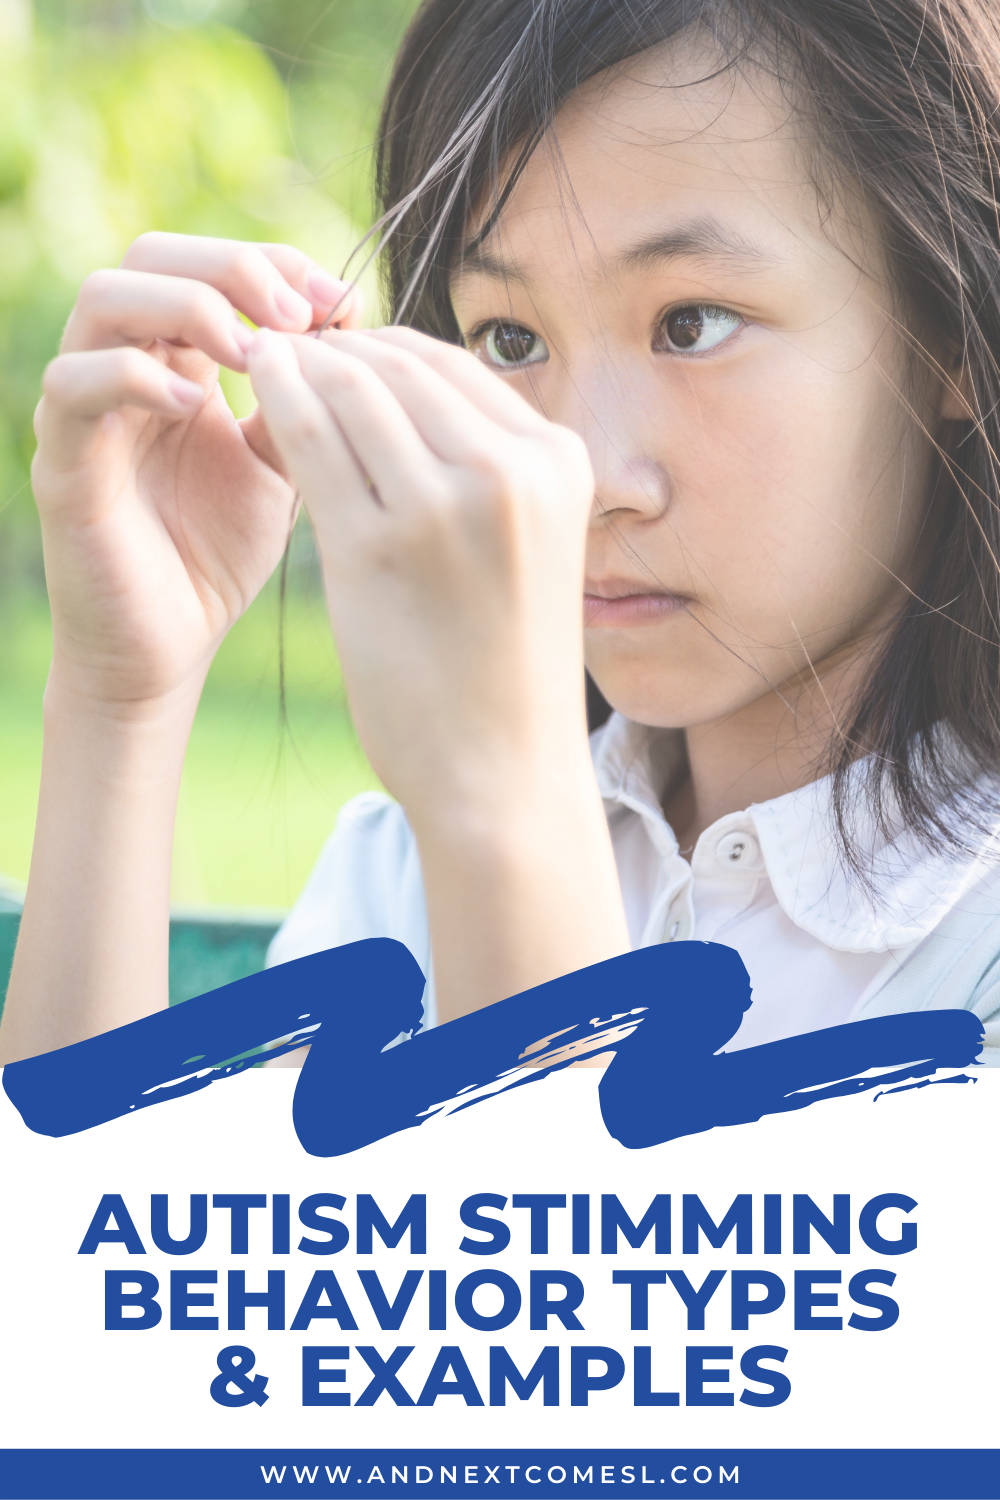 Stimming behaviors in autism: a look at different types of stimming in autism and common examples of stimming in autism